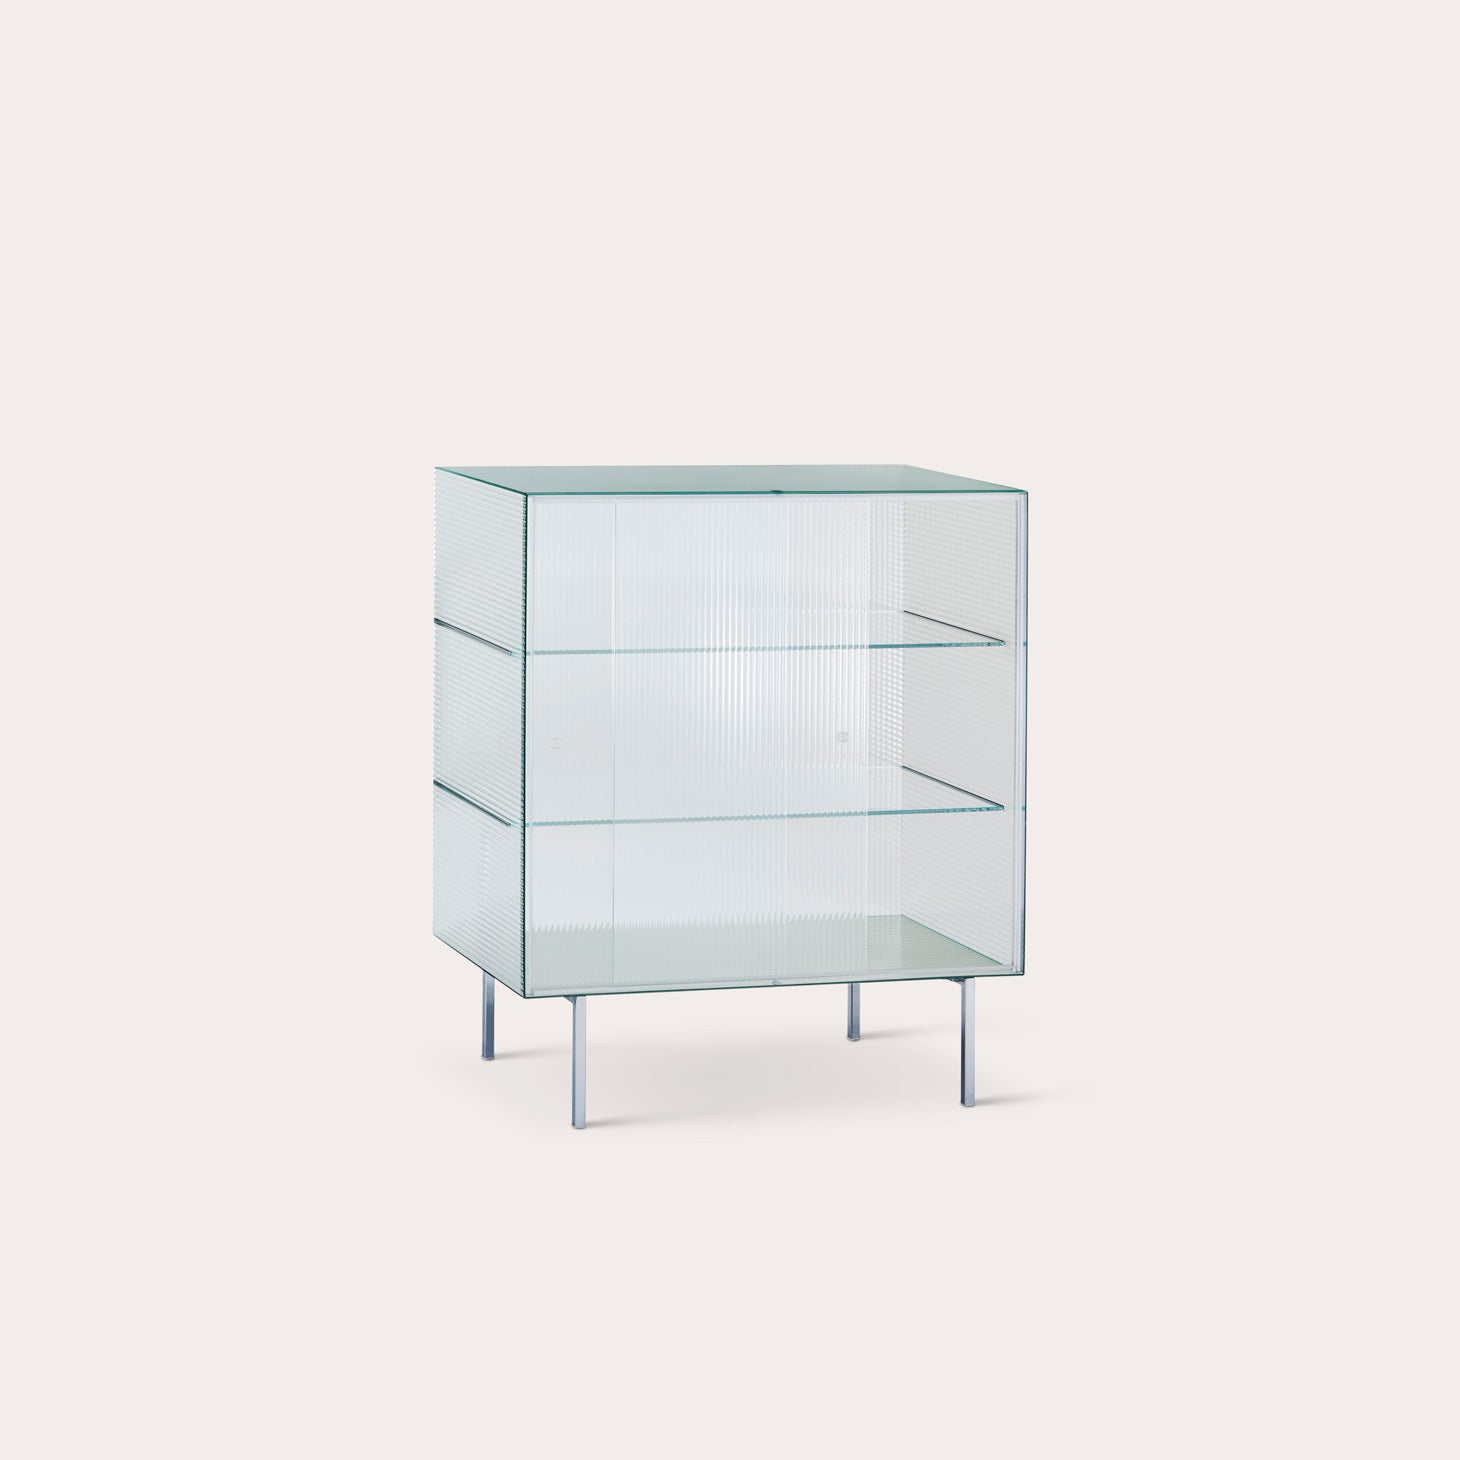 Commodore Cabinet Storage Piero Lissoni Designer Furniture Sku: 288-230-10246